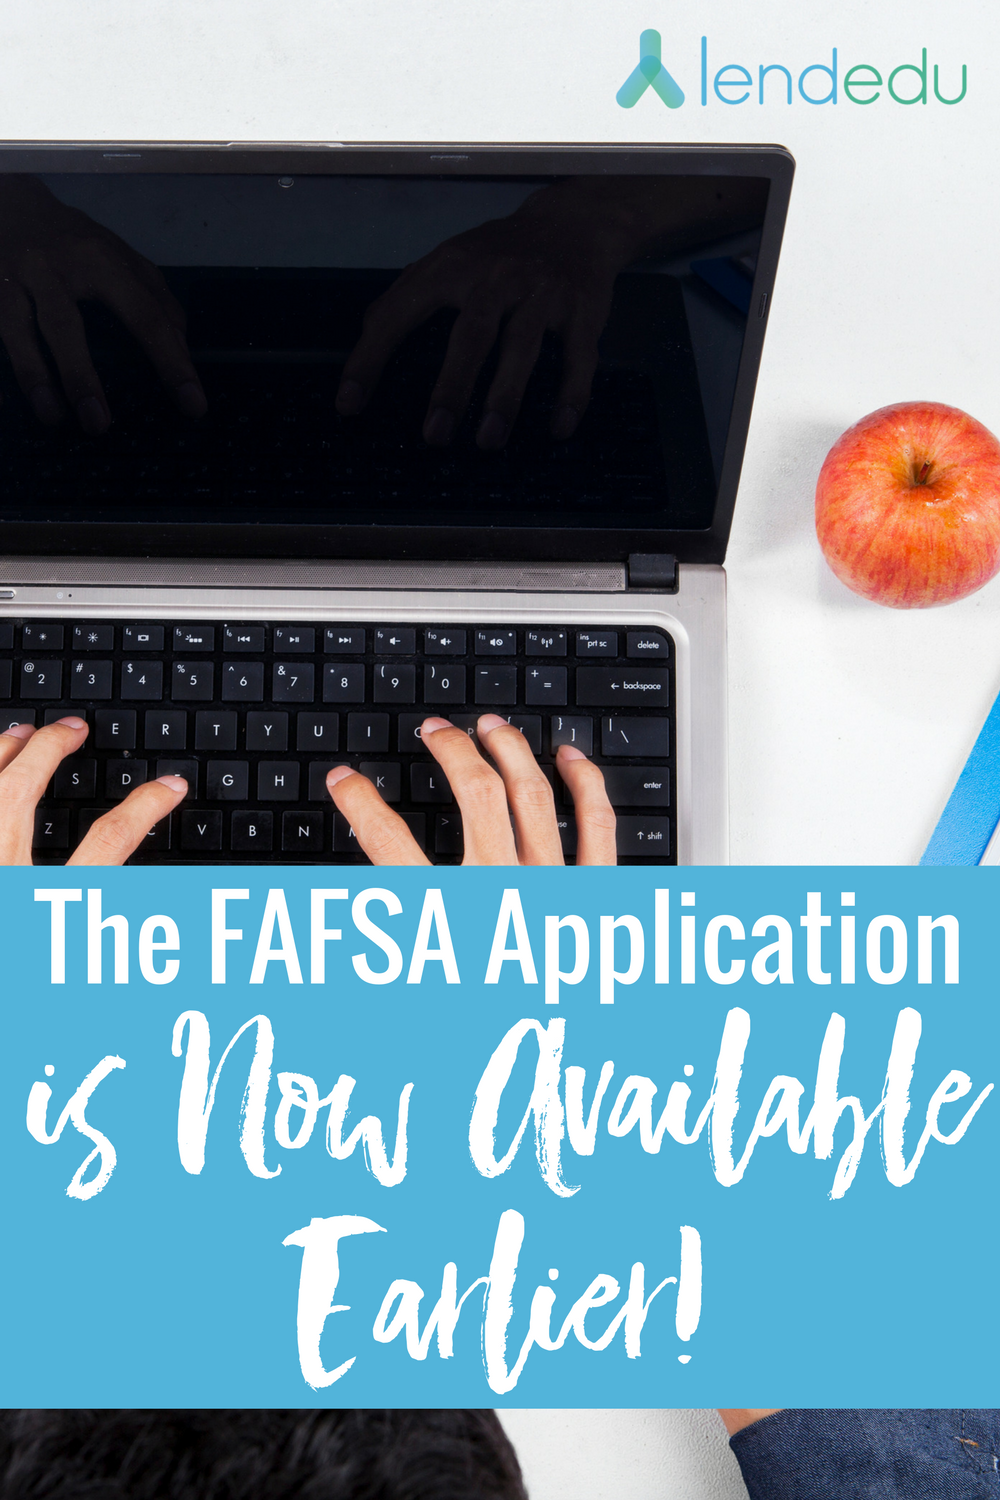 FAFSA Application Now Available Earlier